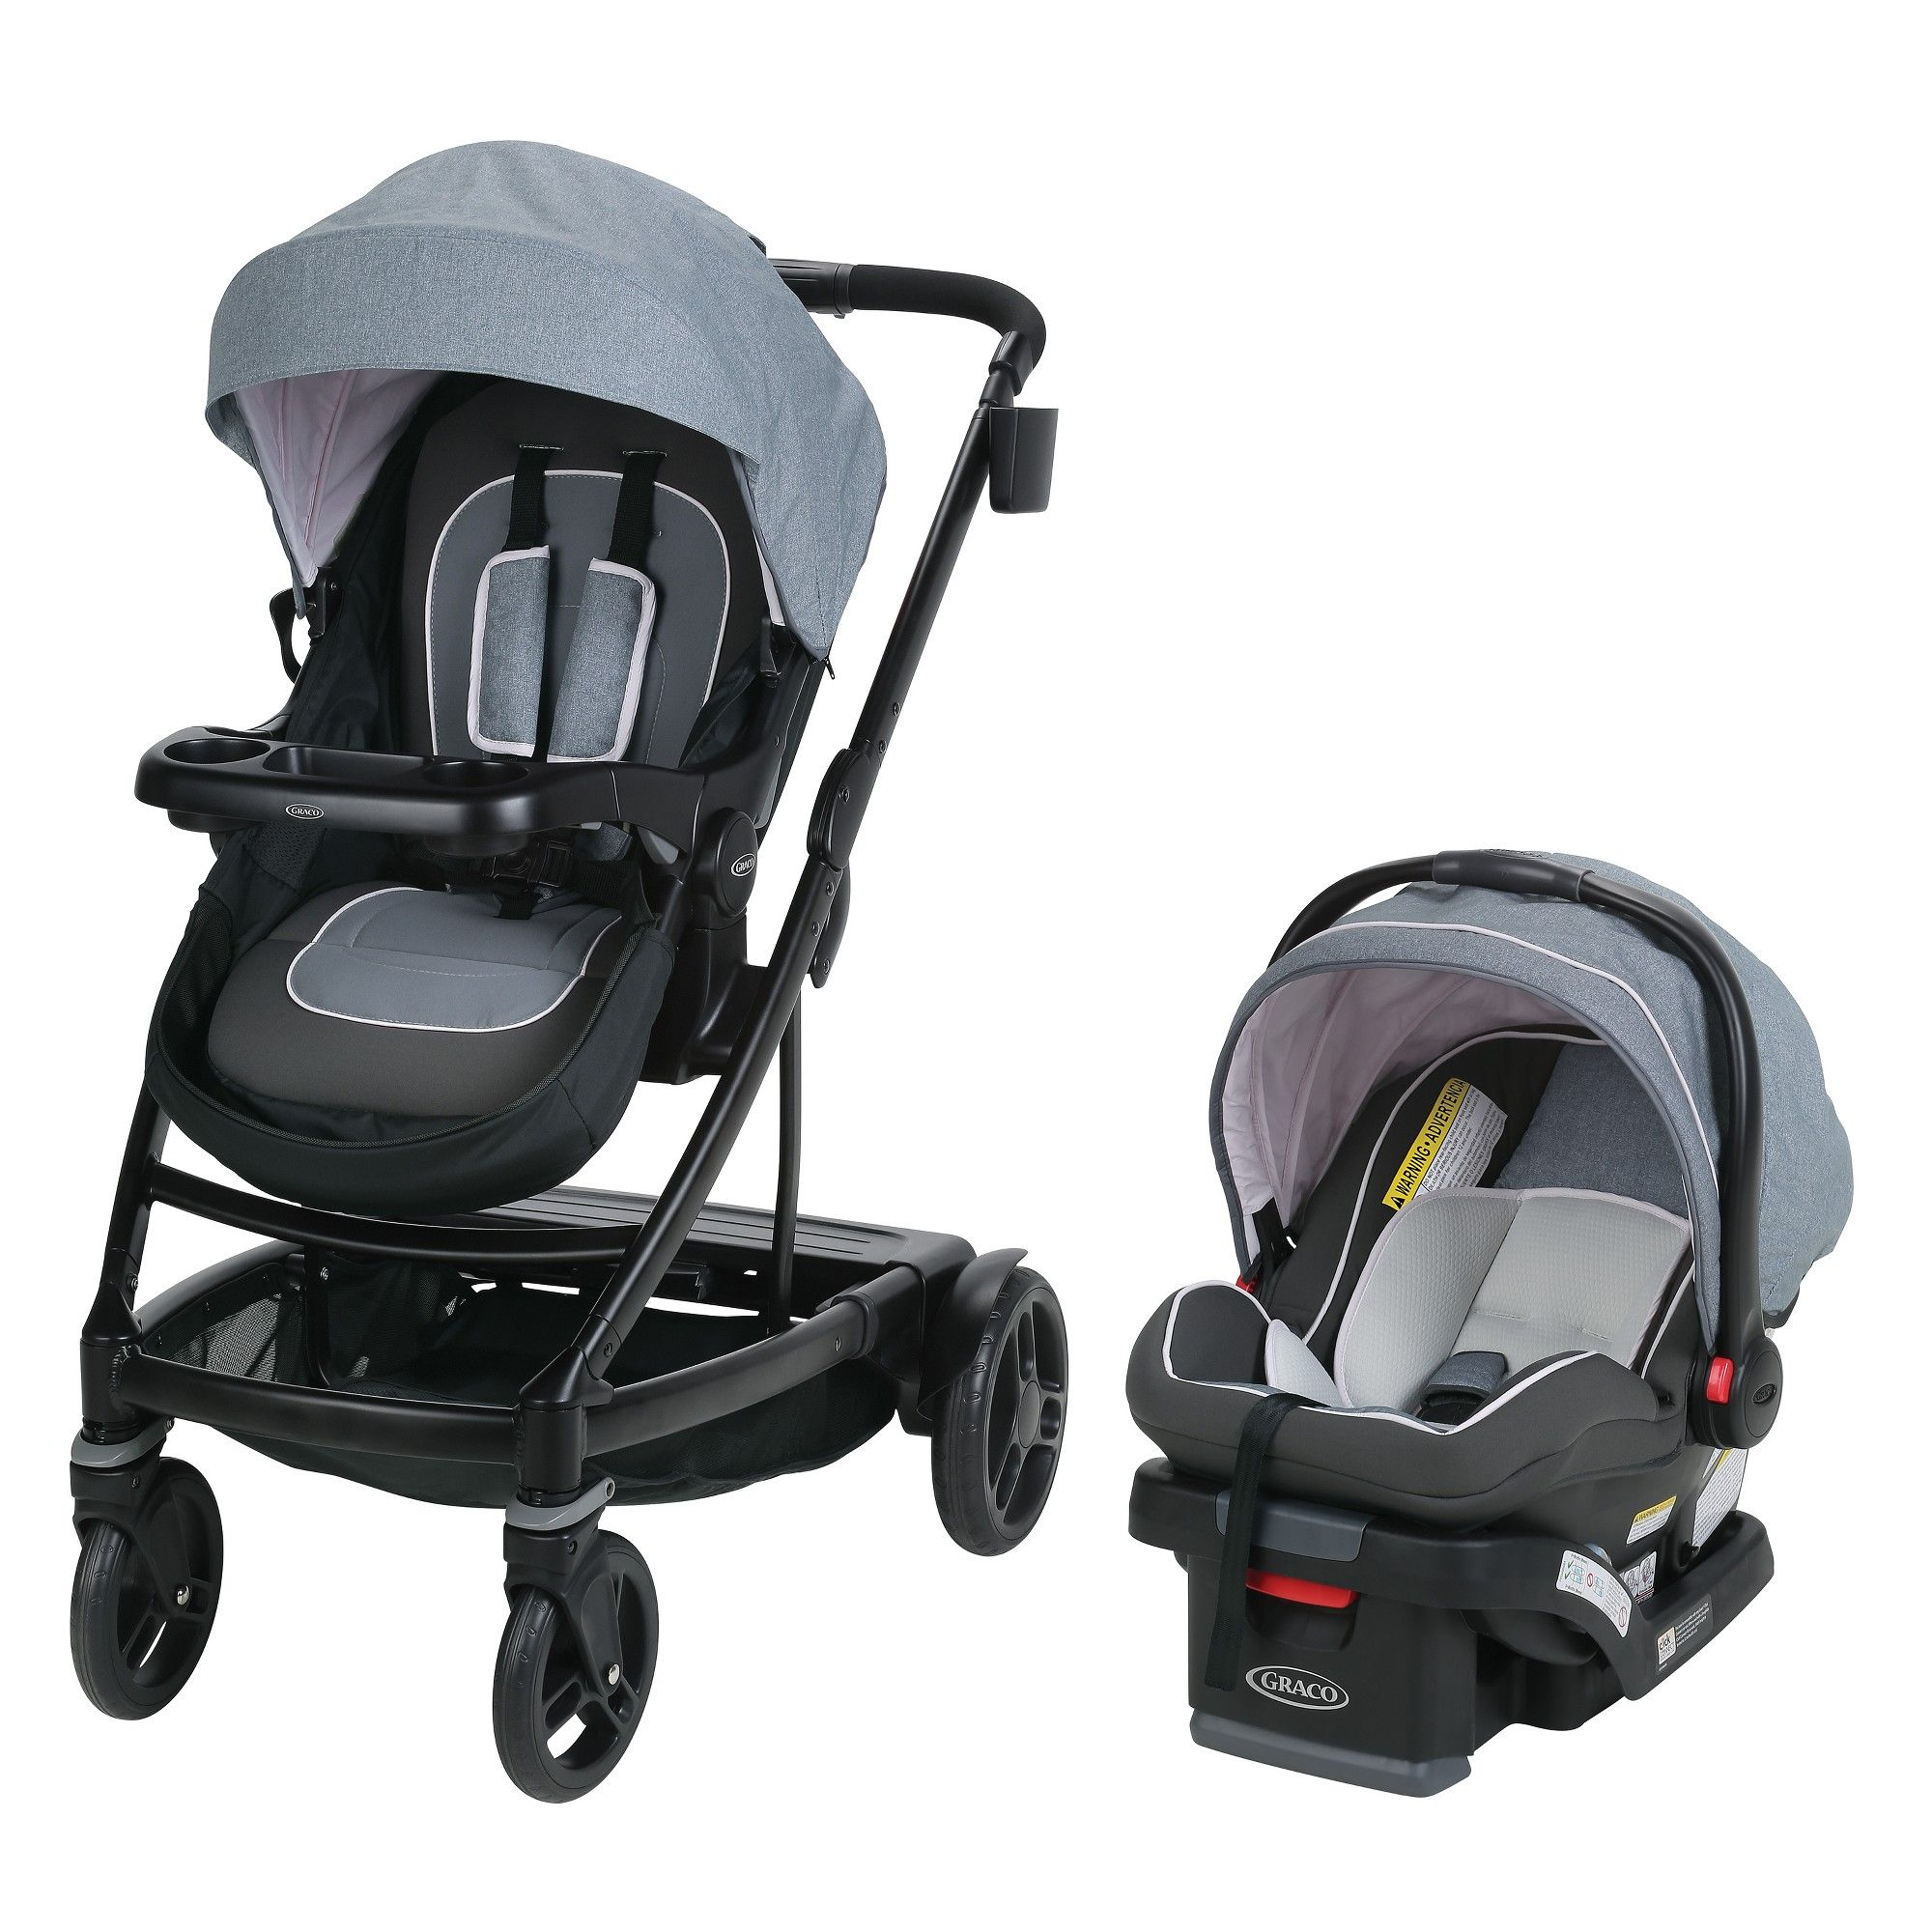 Graco Uno2Duo Travel System Hazel, Brown Travel system